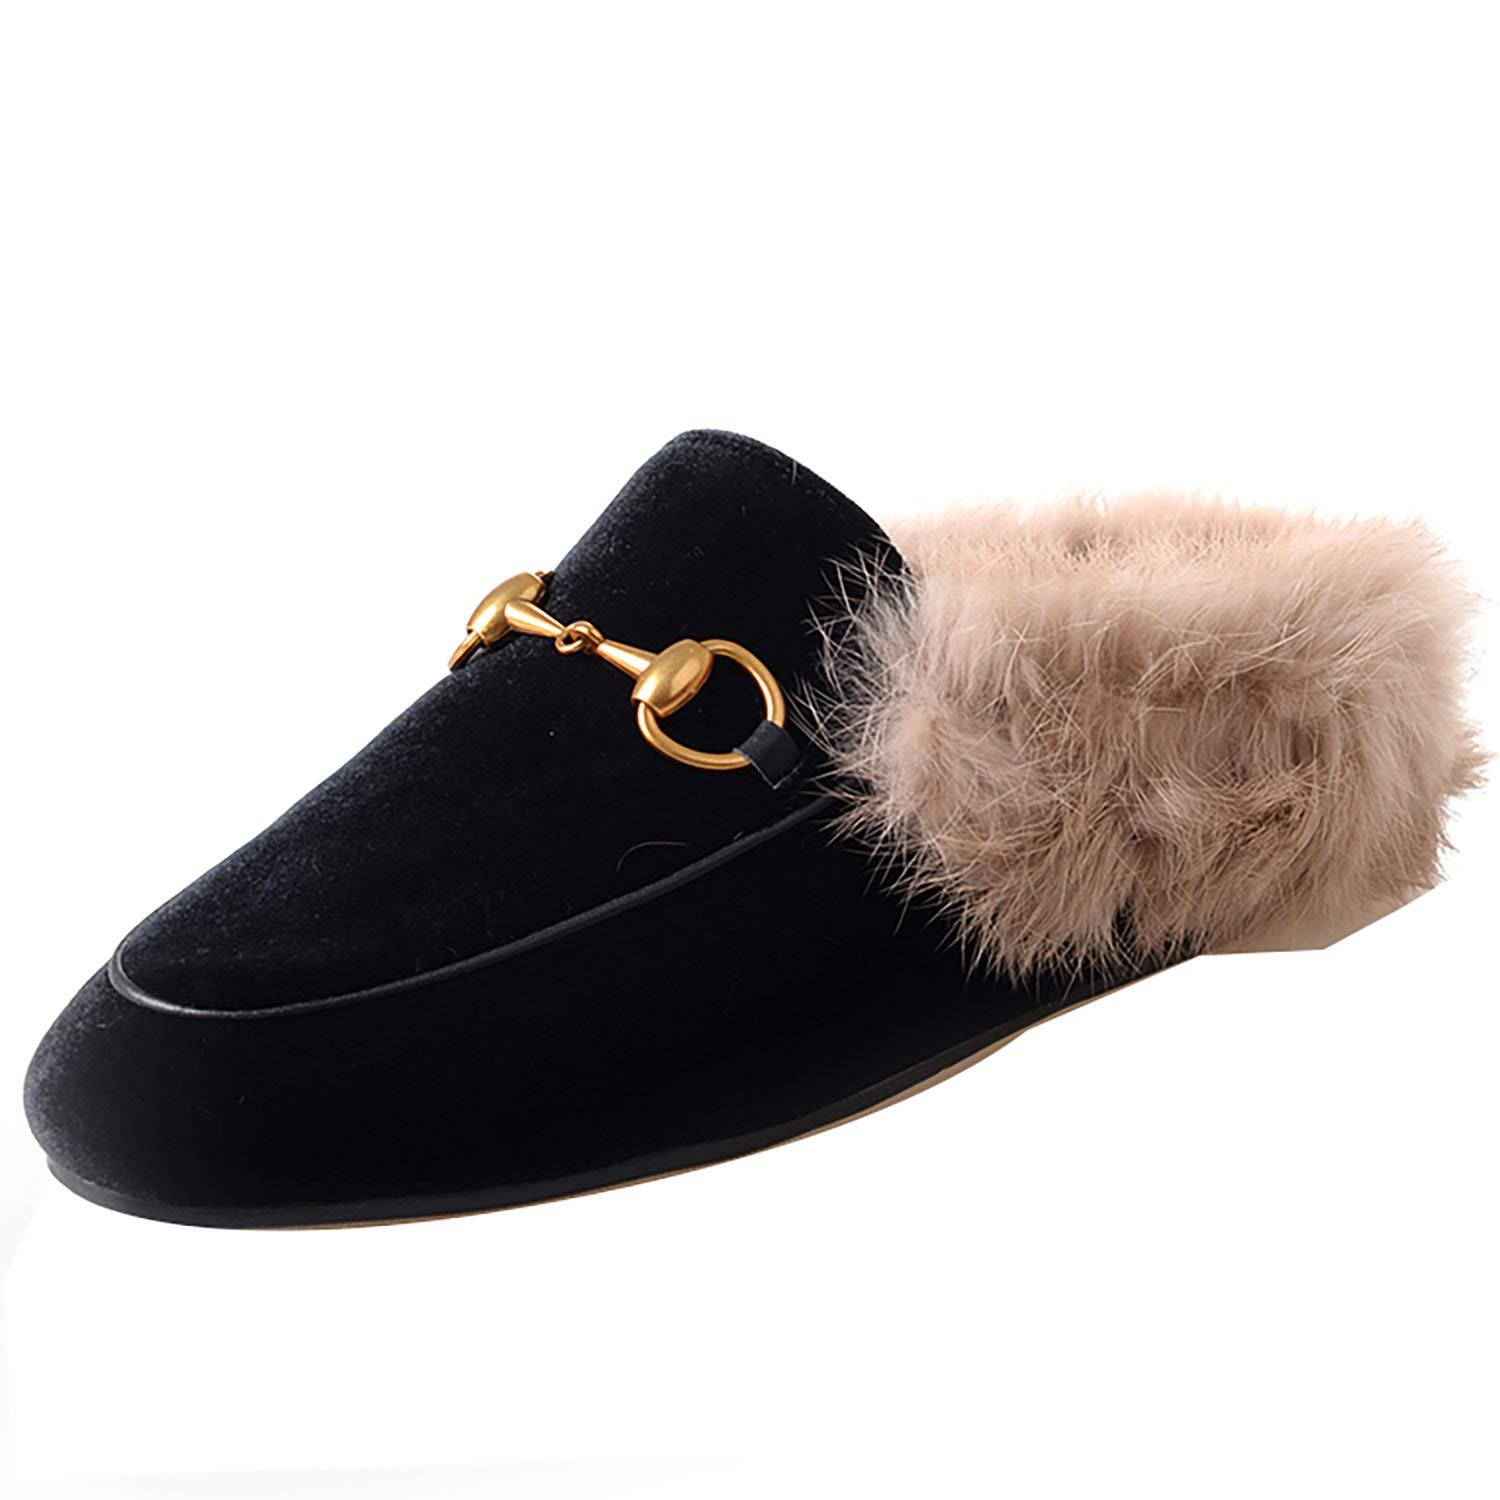 Black velvet HEETIST Backless Faux Fur Mules for Women, Round Toe Yellow Suede Flats Outdoor Slipper Flats shoes